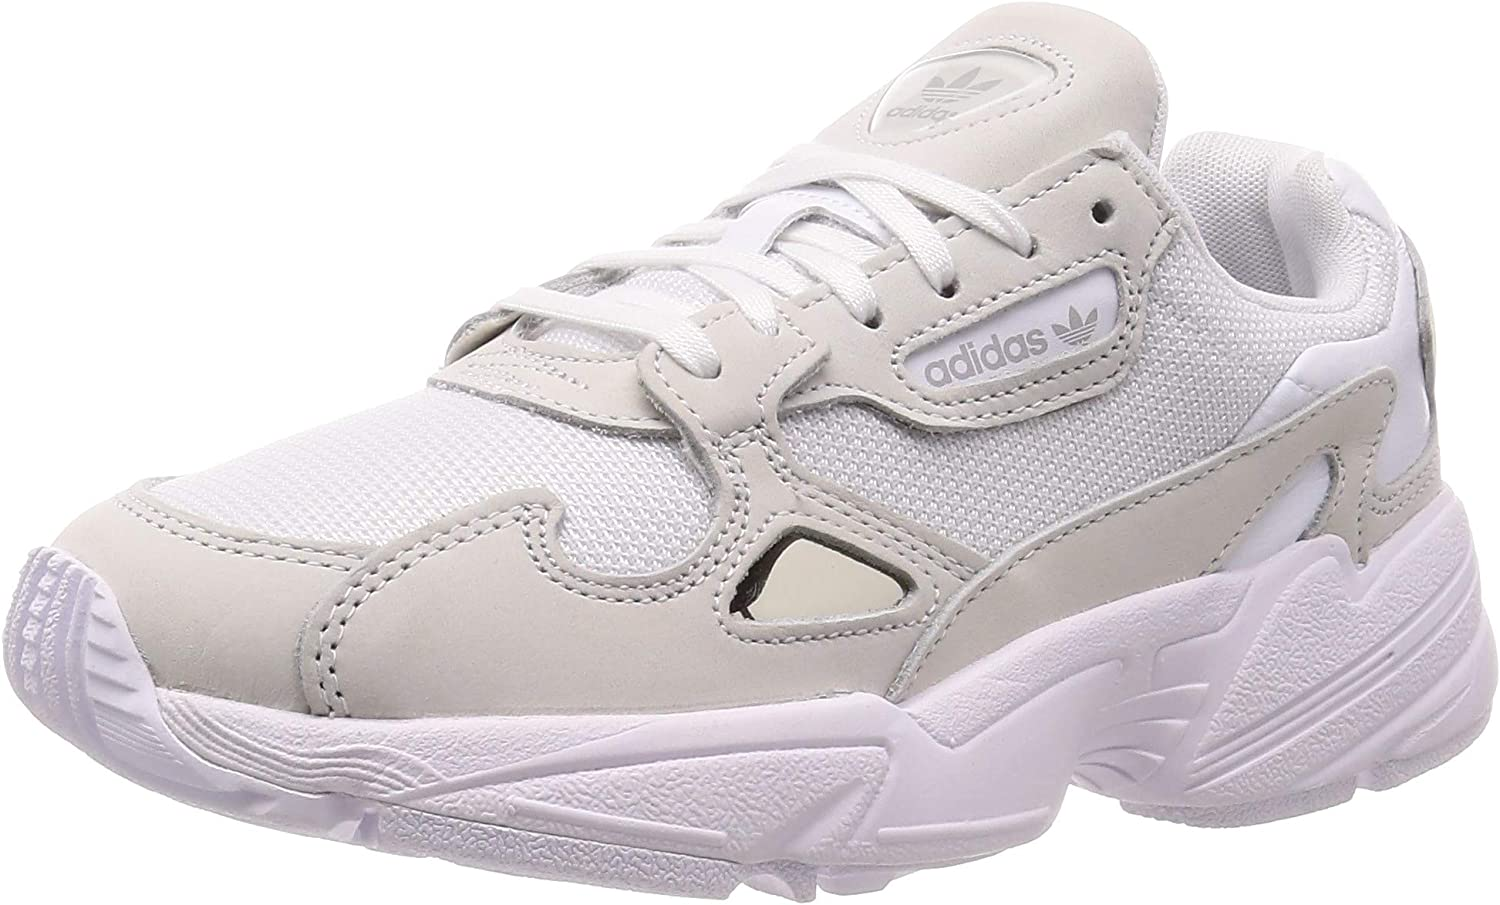 adidas Falcon Sh W, Scarpe da Ginnastica Womens, Bianco (Cloud White/Cloud  White/Crystal White), 36 EU: MainApps: Amazon.it: Scarpe e borse